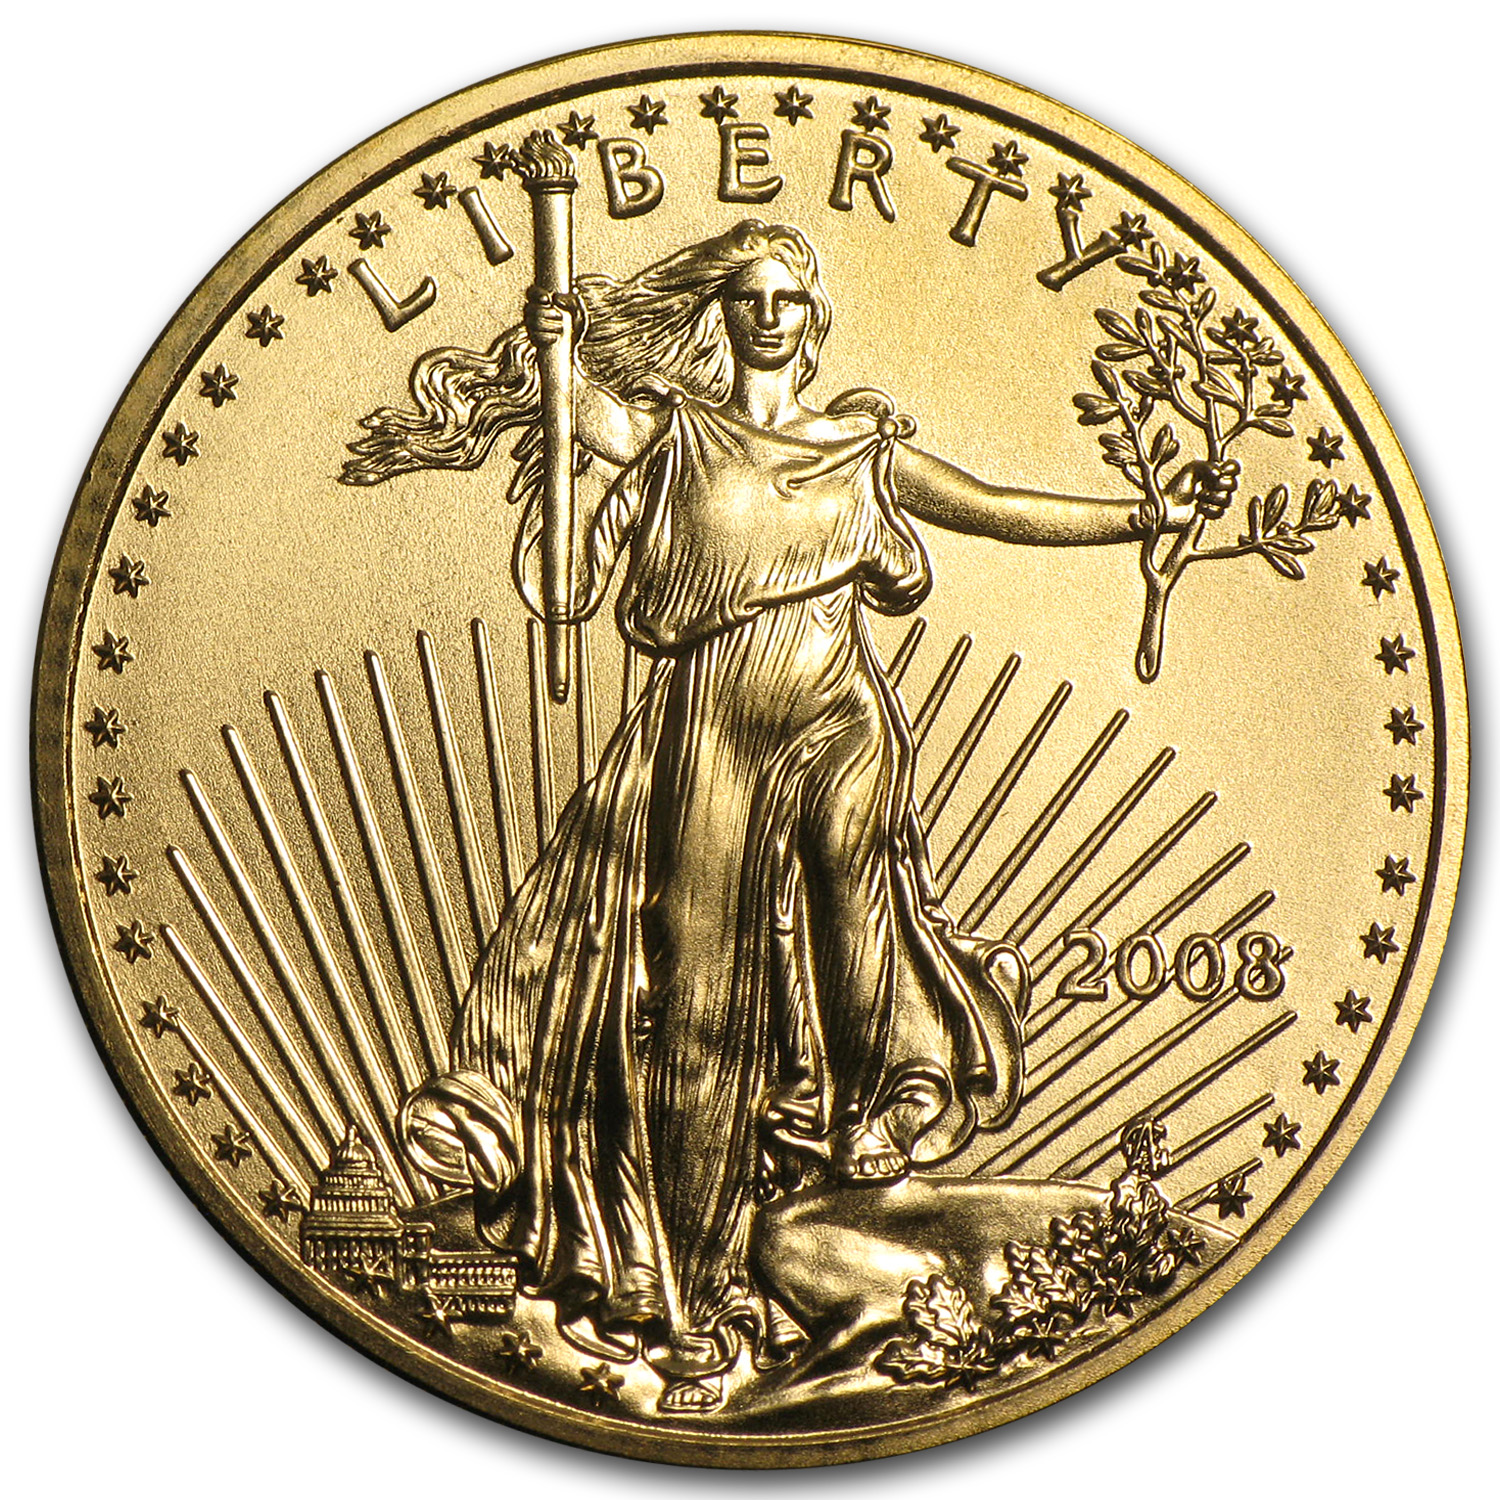 2008 1/4 oz Gold American Eagle BU